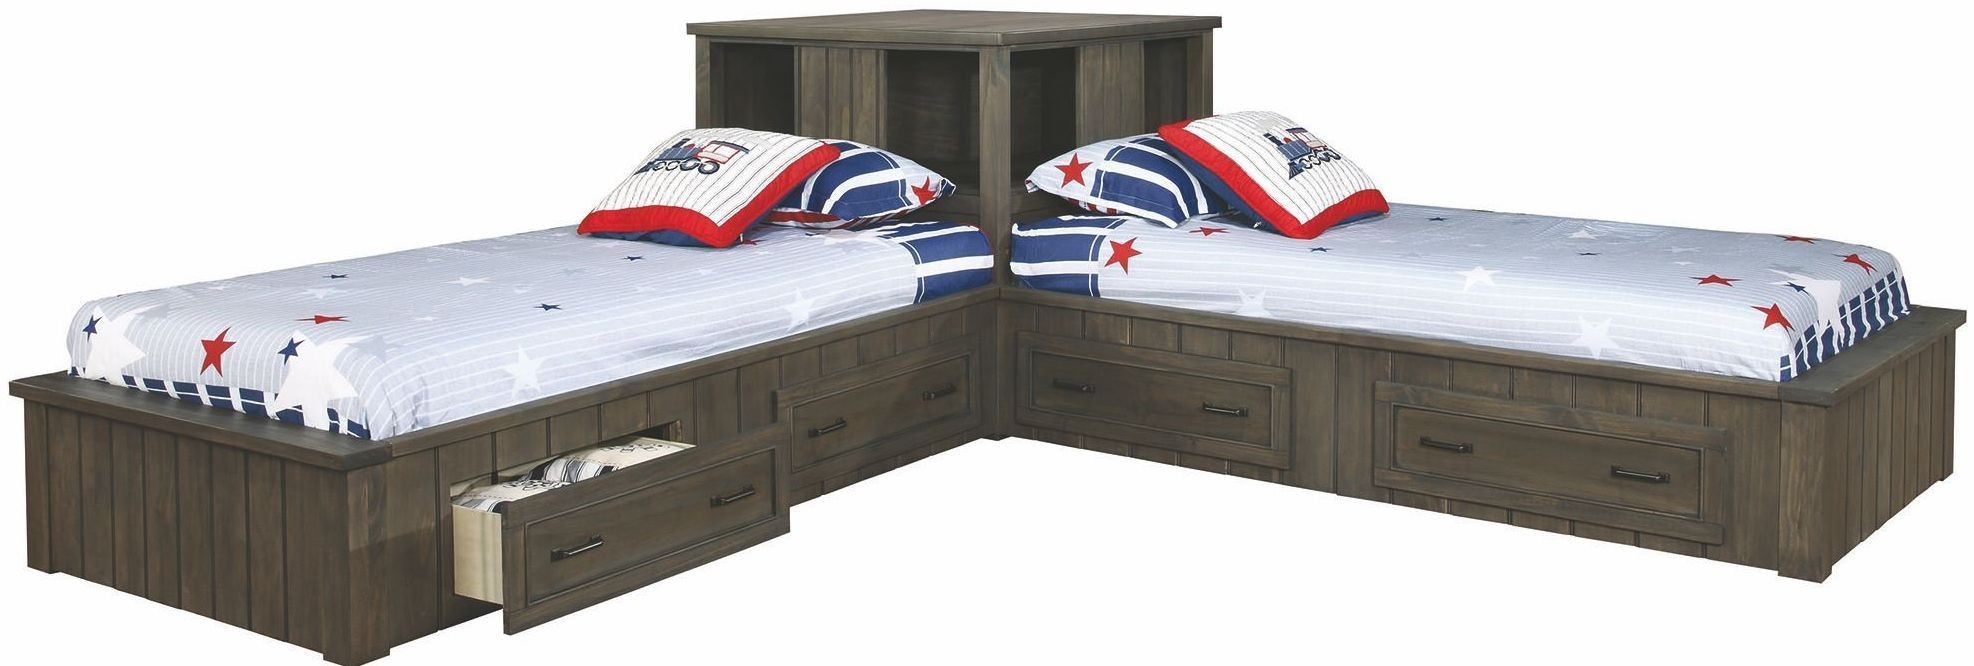 youth of napoleon Buy napoleon youth gunsmoke chest on 1stopbedroomscom and get exclusive features as free in-home delivery and 100% price match guarantee want to purchase napoleon youth gunsmoke chest by coaster from napoleon collection.